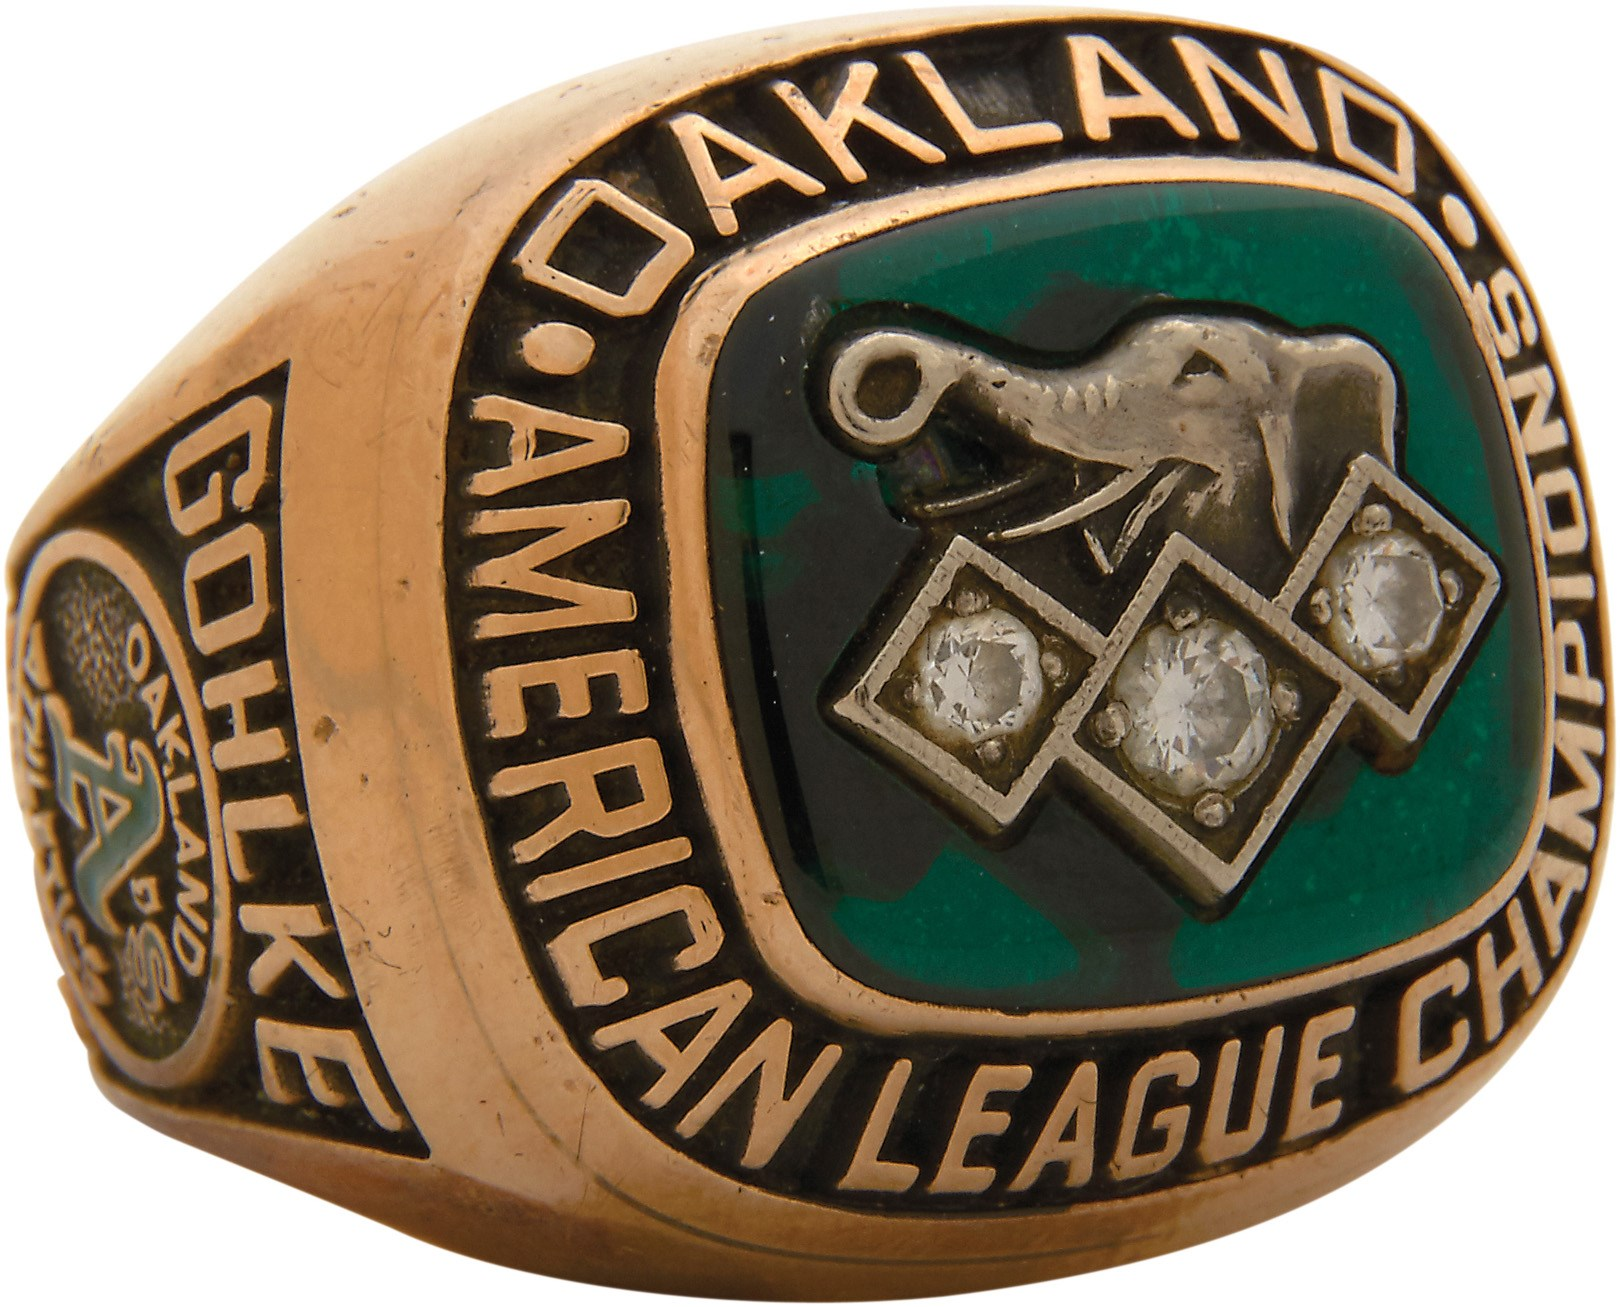 Sports Rings And Awards - Leland's Classic